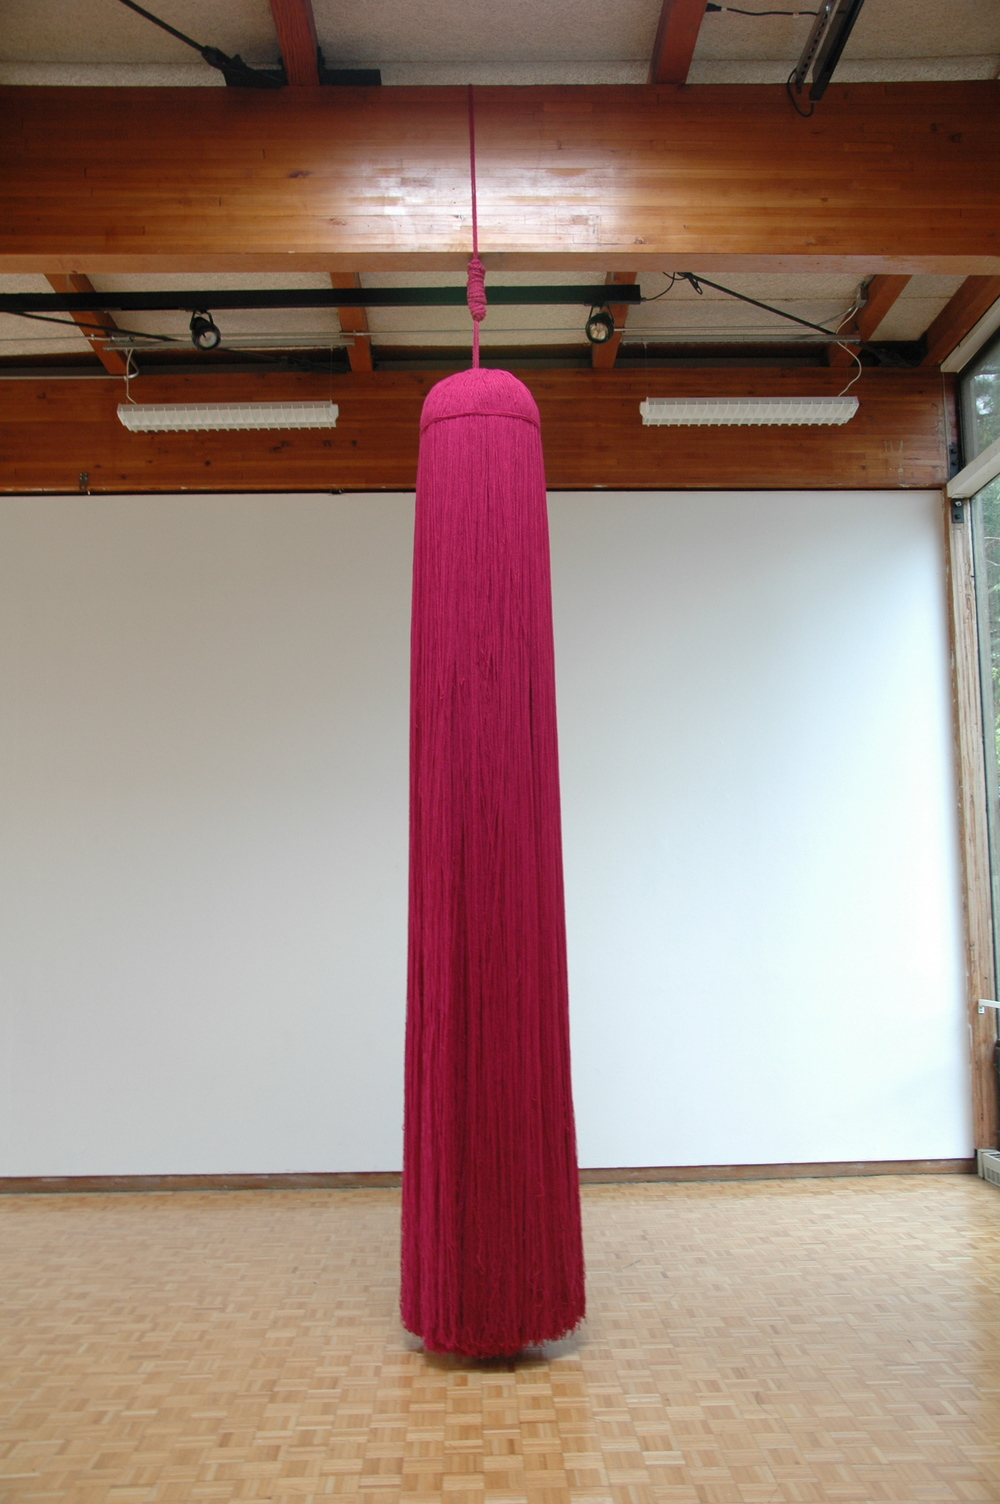 A Work in Progress: TRIM (Installation at Usdan Gallery, Bennington College), 2010, Acrylic yarn, 14' x 40' x 80' (Tassel detail)